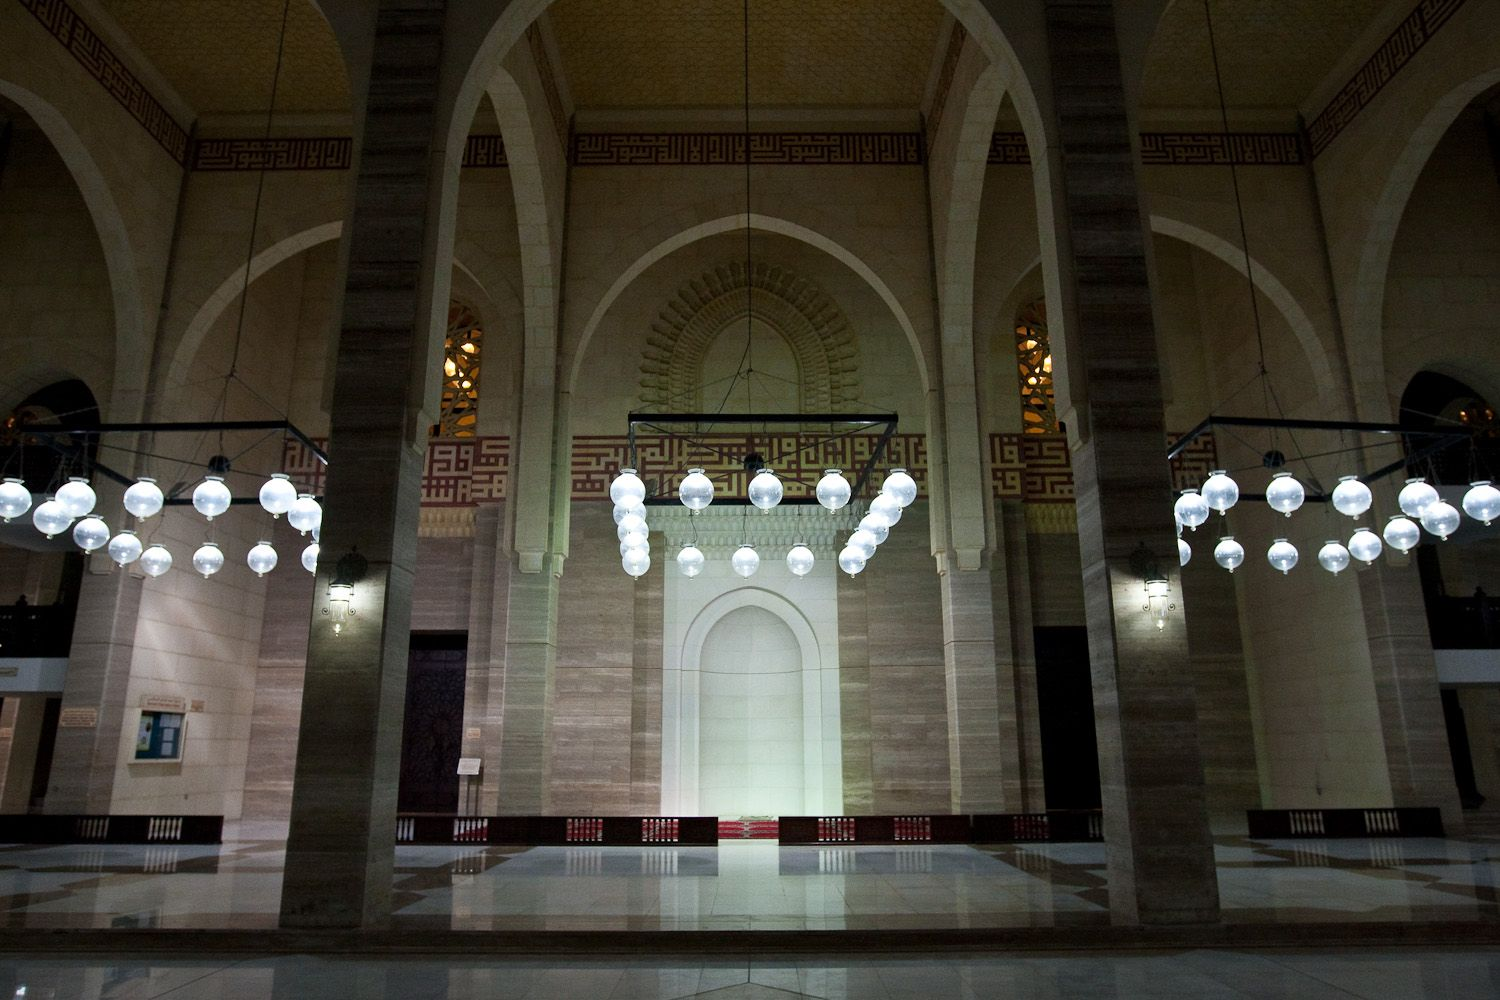 Bahrain - Al Fateh Grand Mosque - Interior - The doors are made of teak wood from India. Throughout the mosque are calligraphy writings in a very old type of style called Kufic.